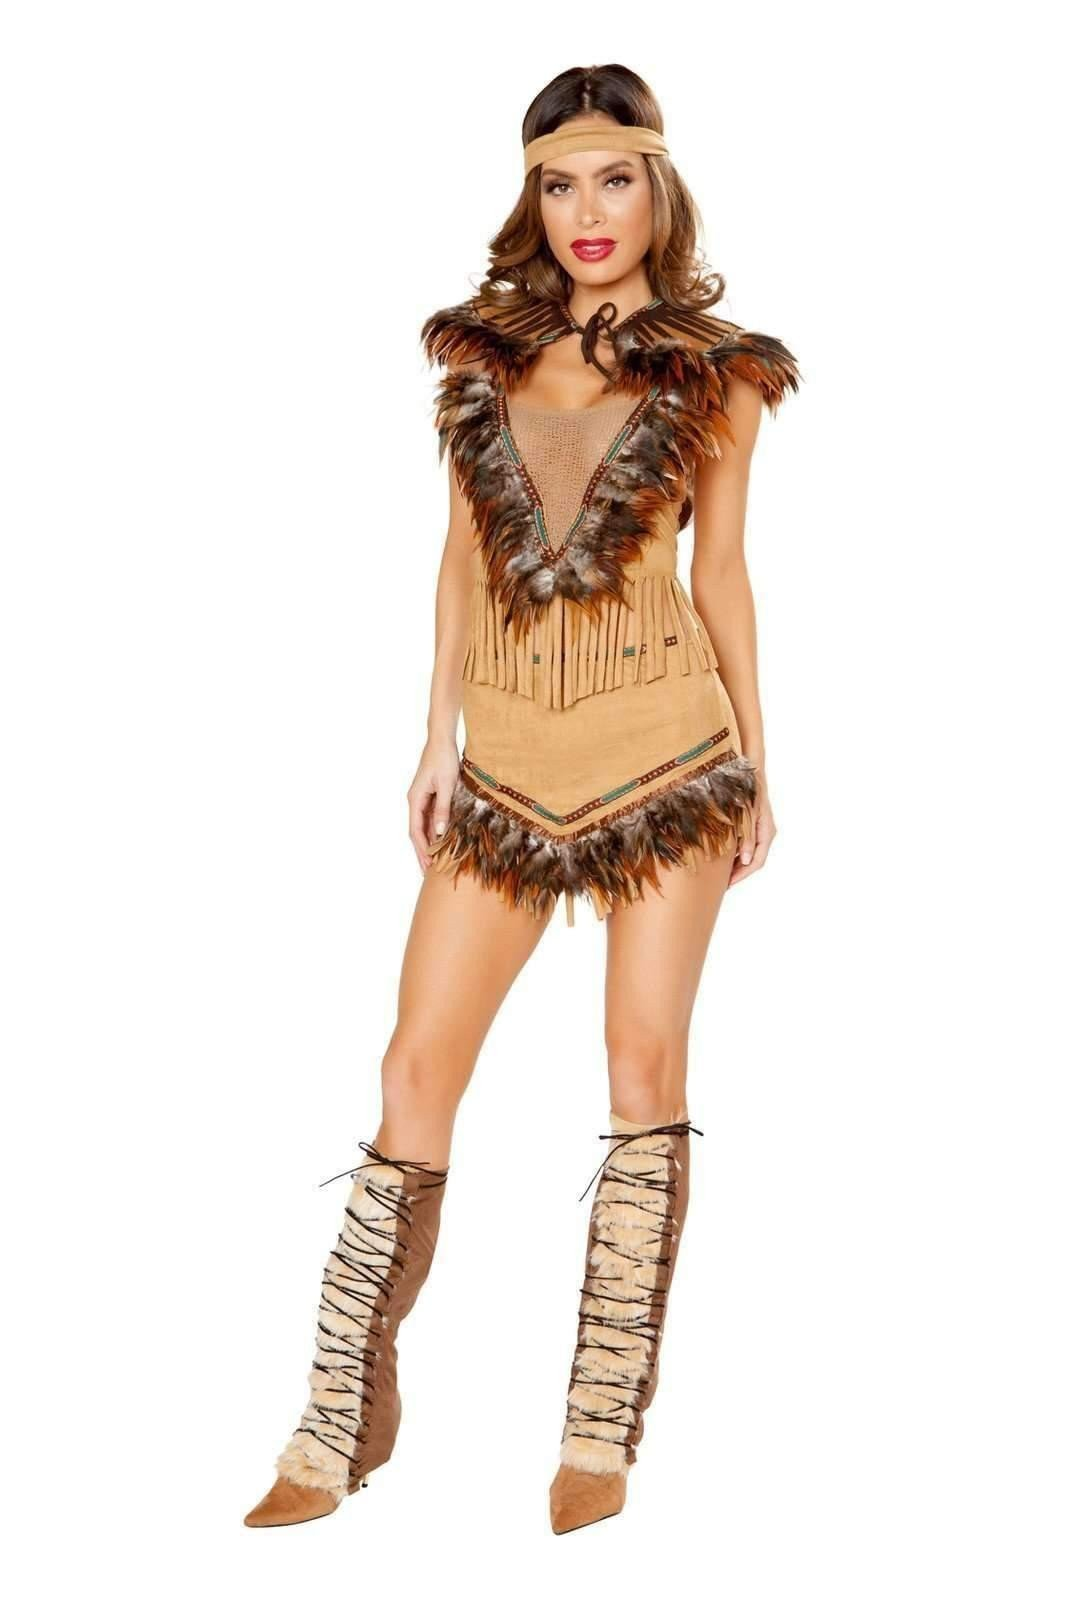 Roma Costume 10117 - 3pc Cherokee Inspired Hottie-Costumes-Roma-S/M-Beige-Unspoken Fashion